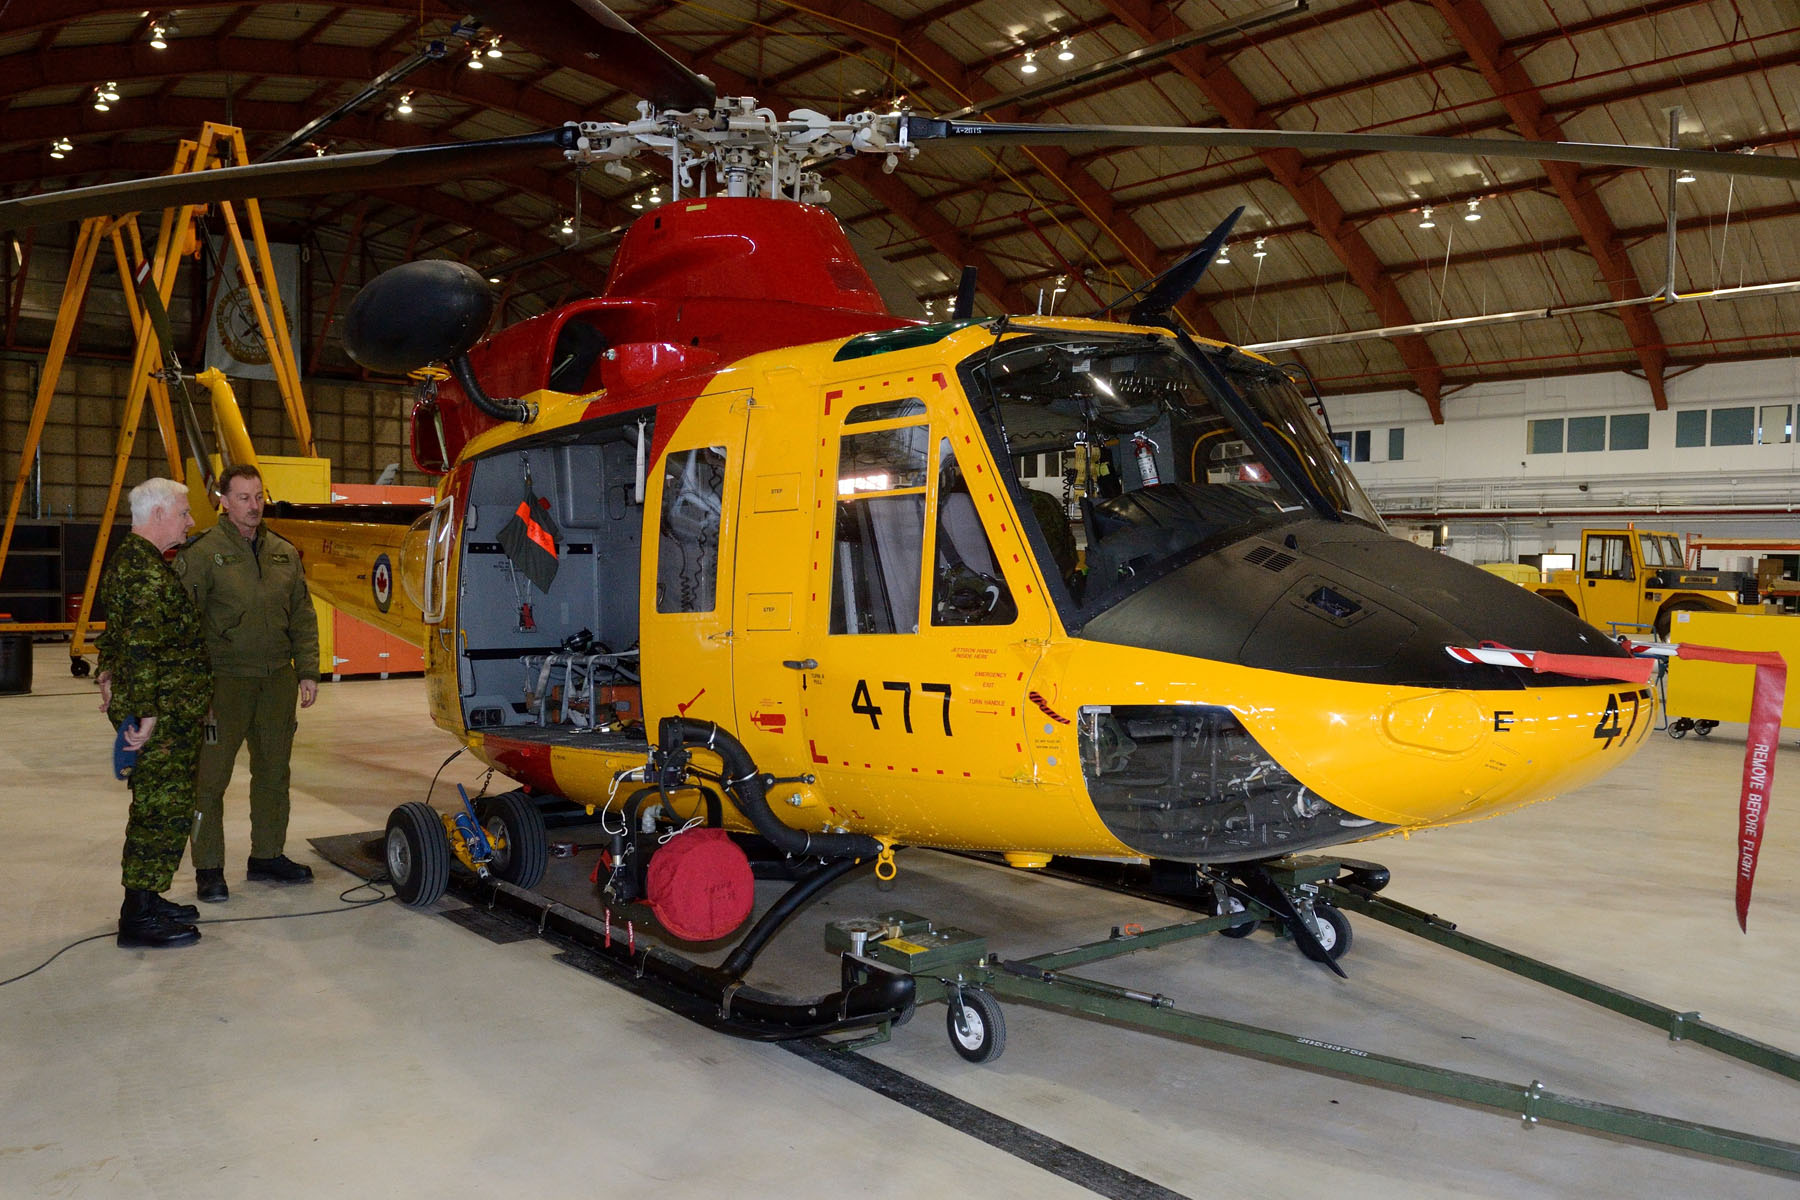 At the end of his visit, the Governor General viewed the CH-146 Griffon helicopter (search and rescue variant) display and met with crew members. 